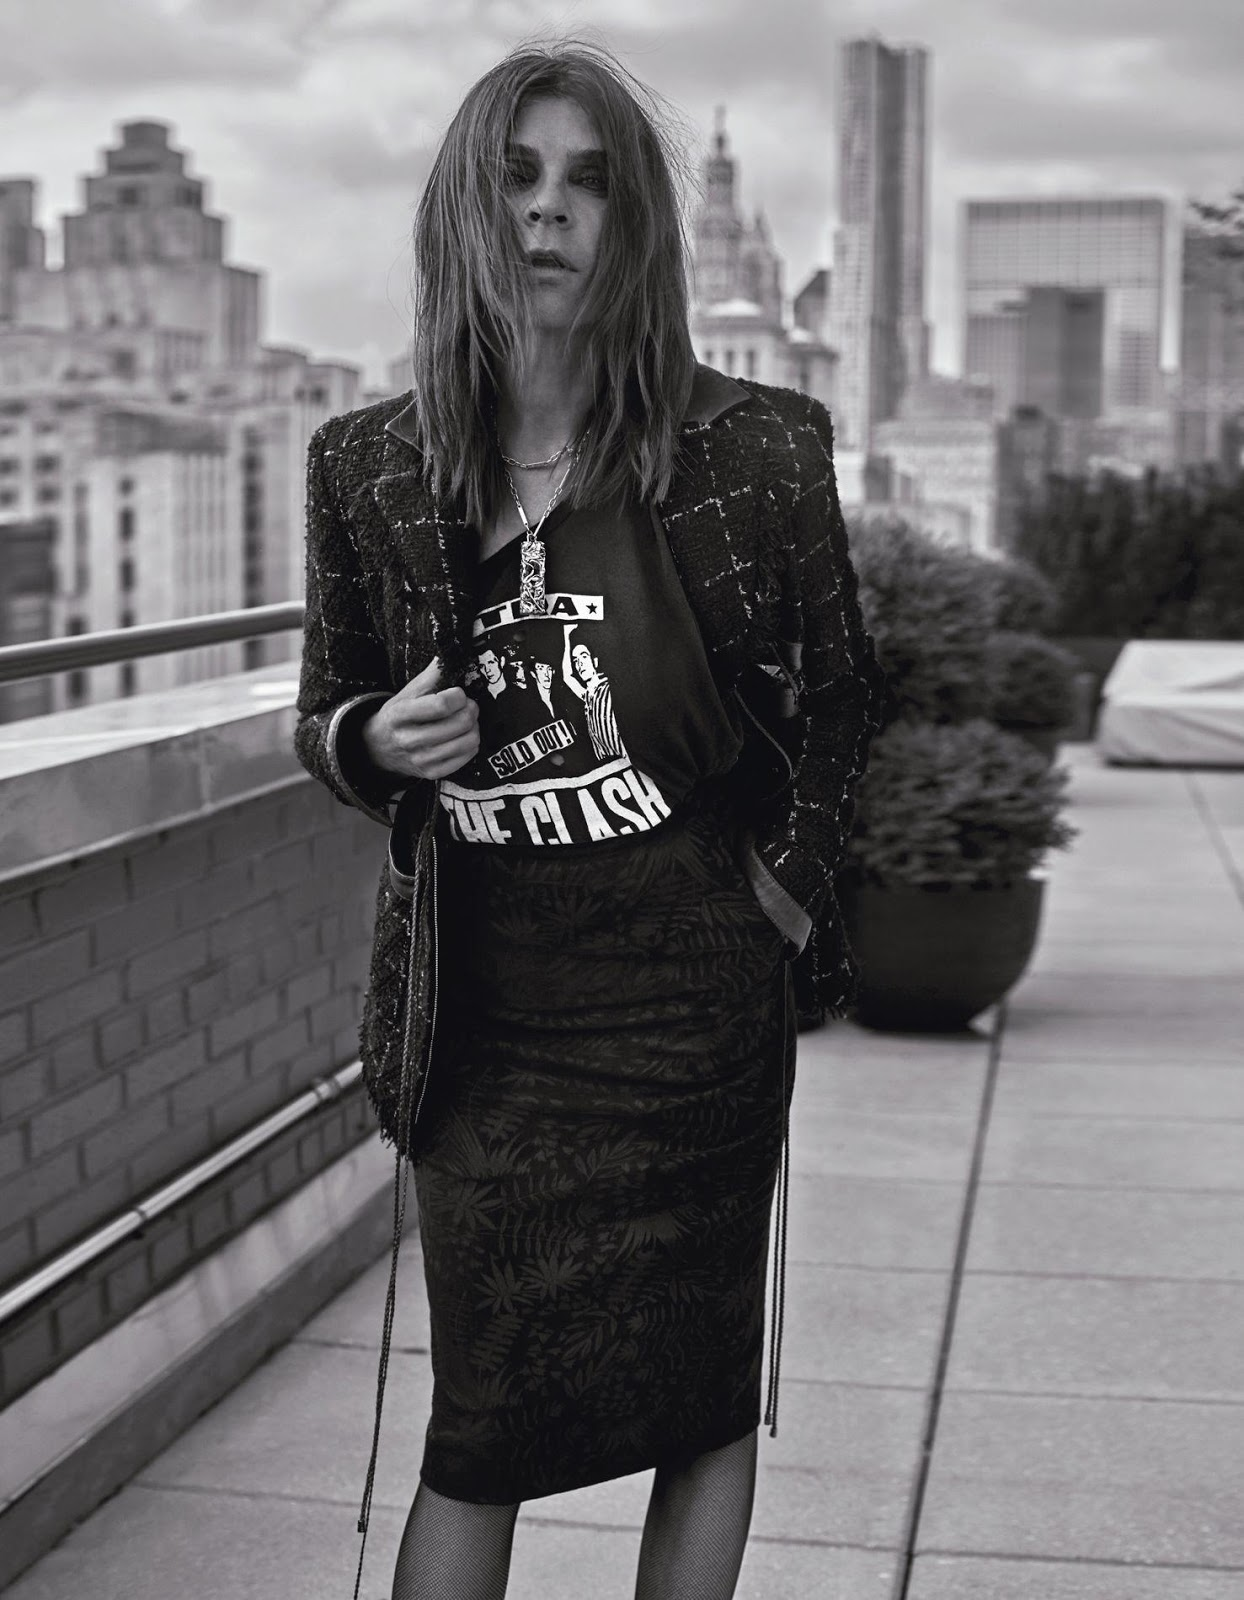 Smile Carine Roitfeld In Madame Figaro Sept 30th 2016 By